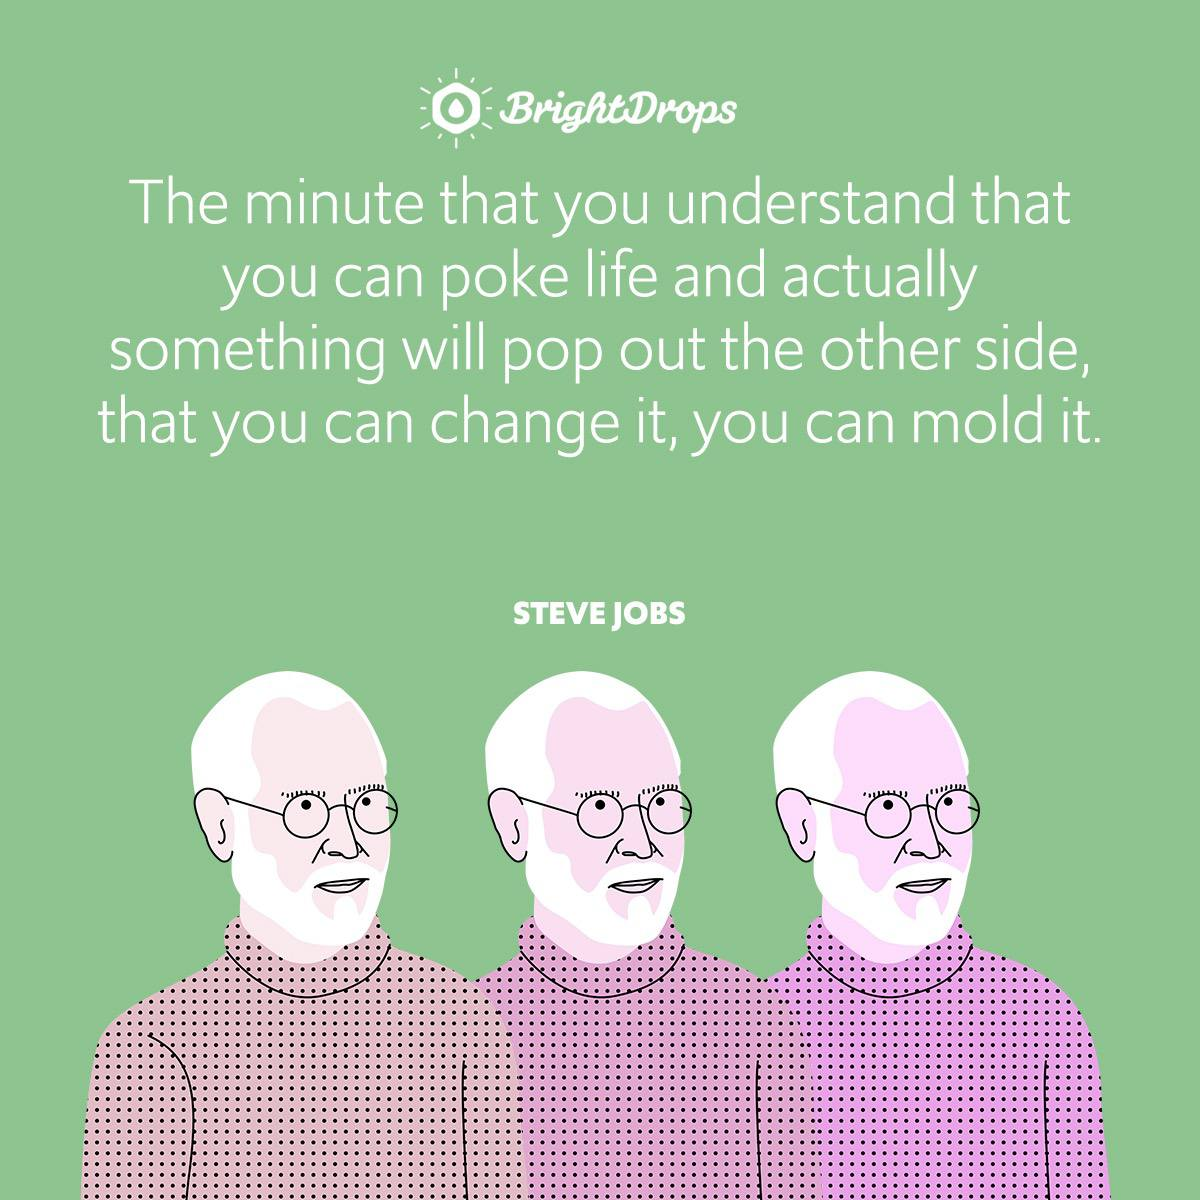 The minute that you understand that you can poke life and actually something will pop out the other side, that you can change it, you can mold it.